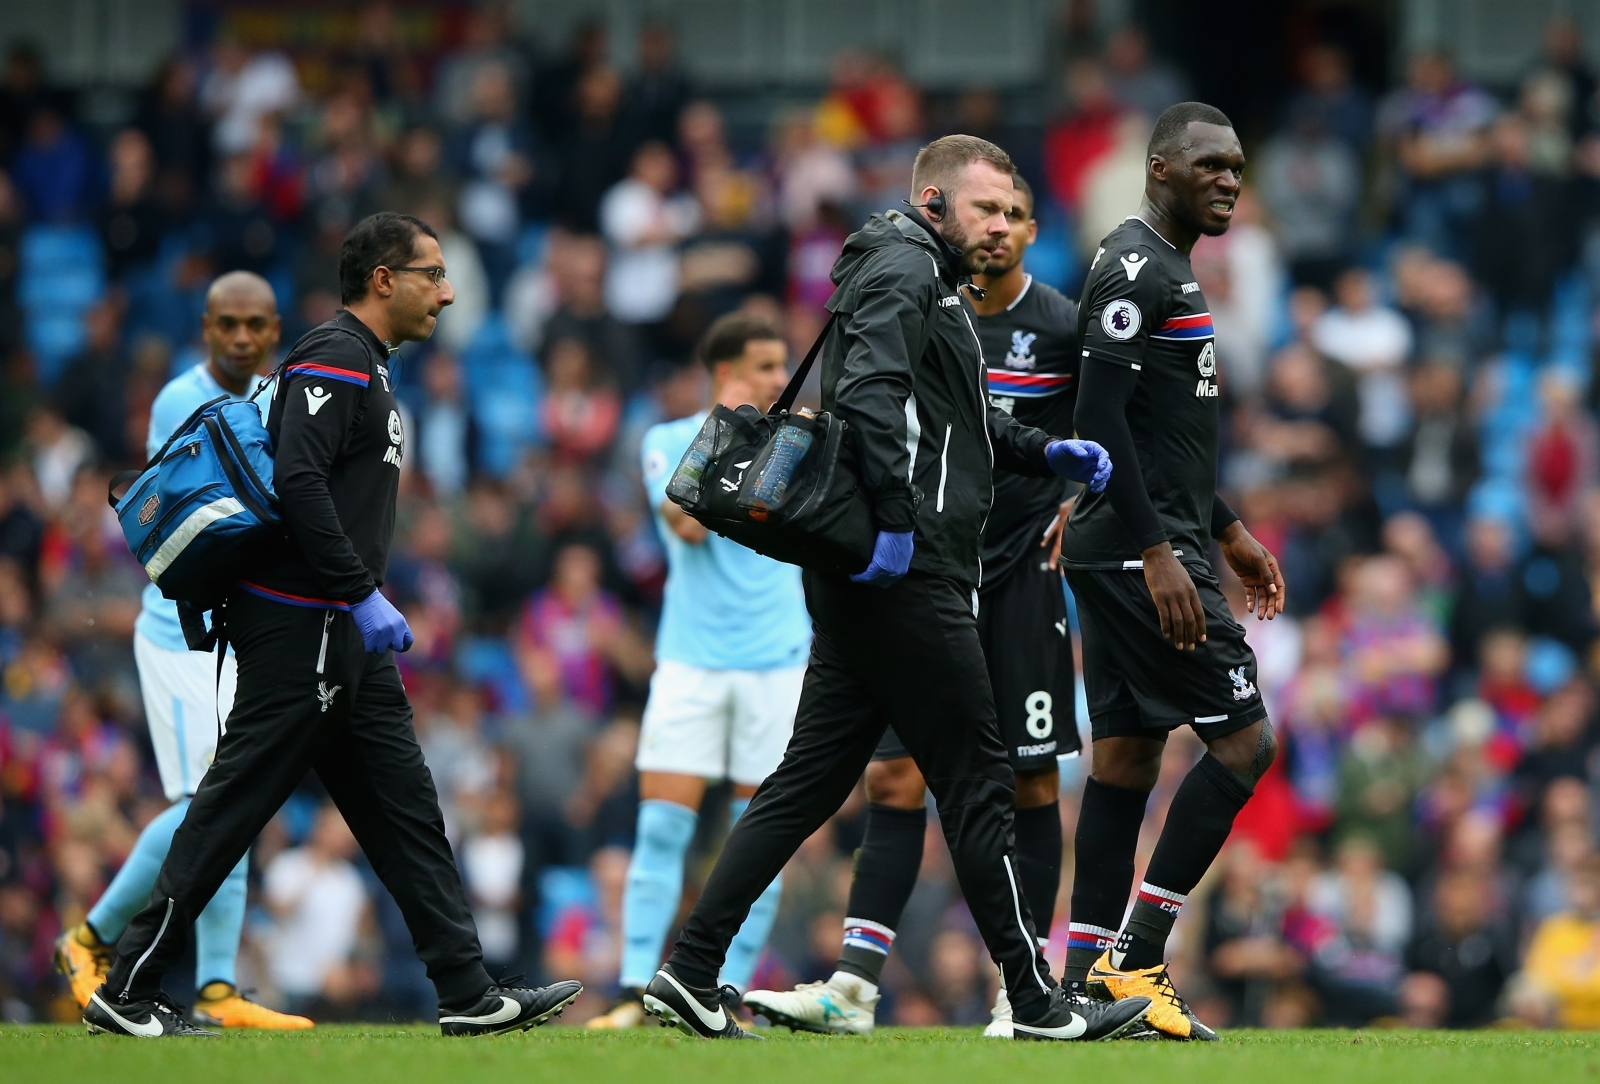 Giant vs ant: Manchester City wallop Crystal Palace 5-0